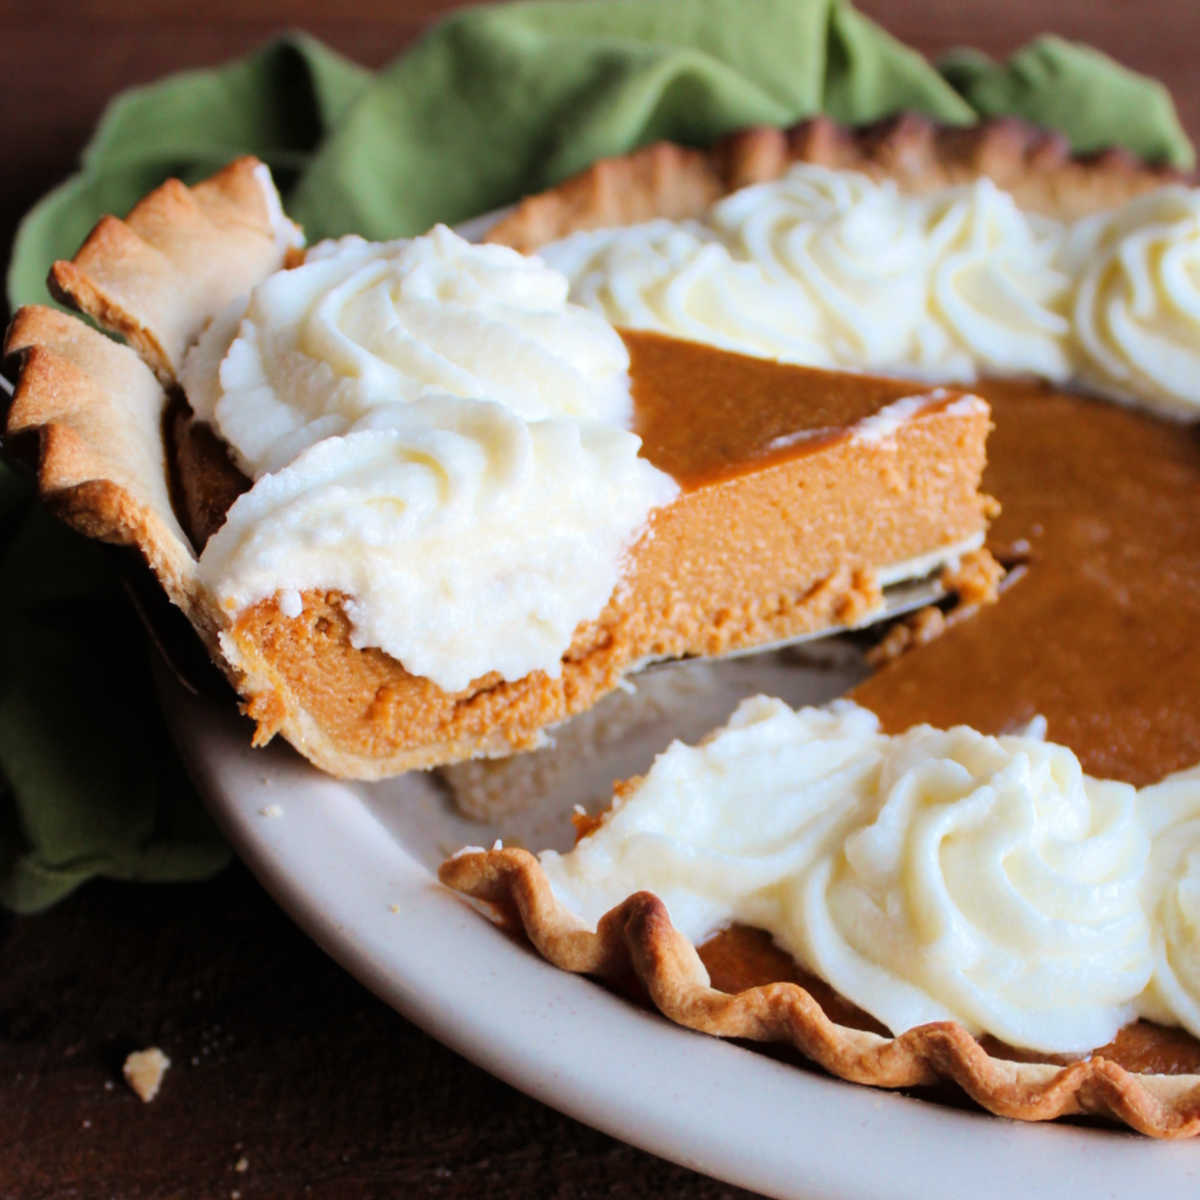 slice of whipped cream topped pumpkin pie being lifted out of pan